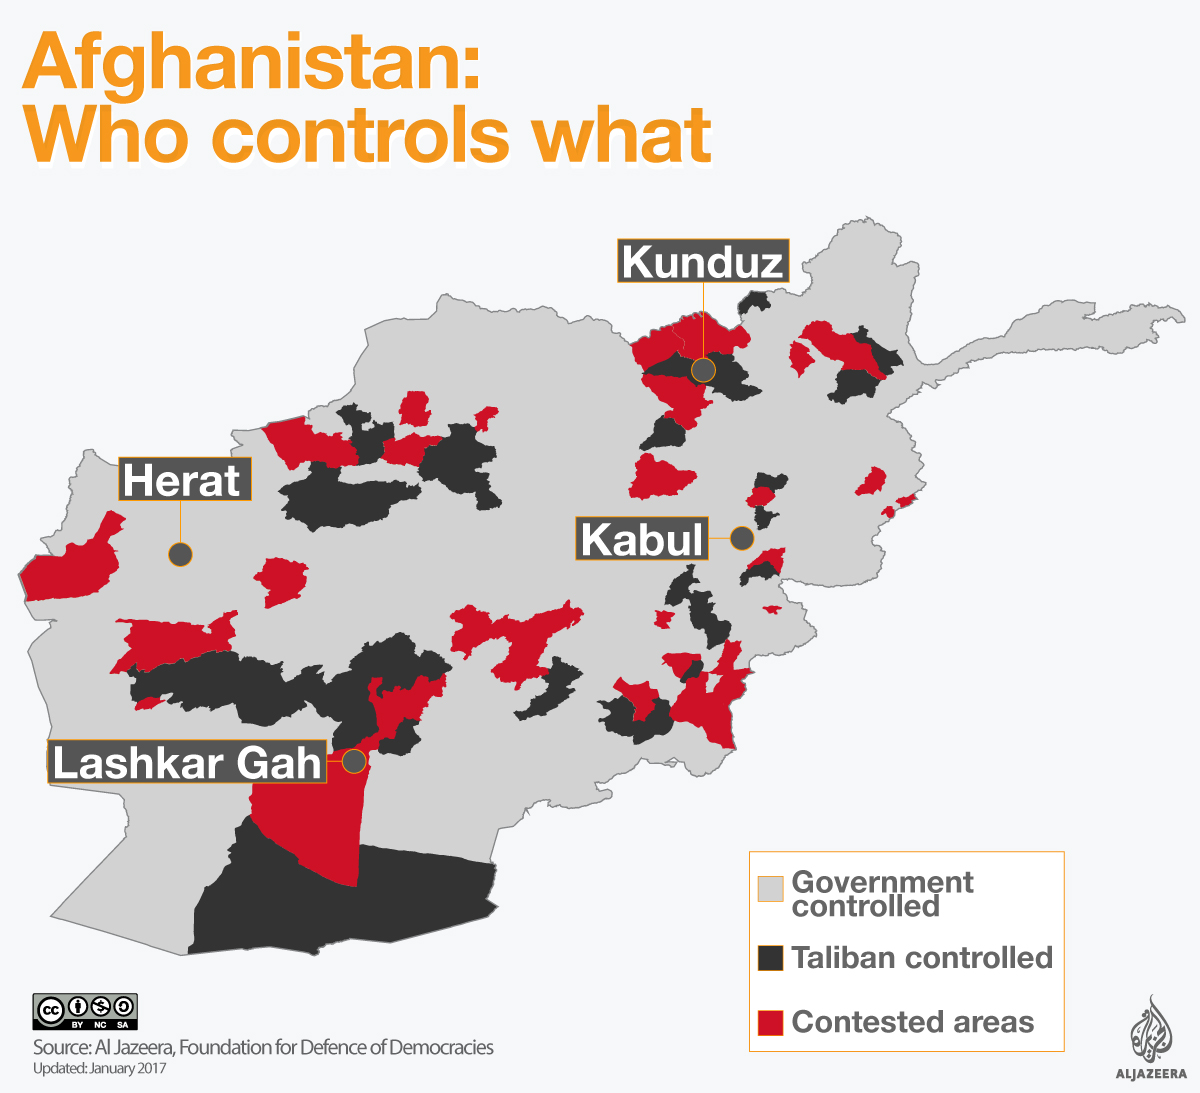 More Than A Decade After The Fall Of The Taliban In 2001 The Armed Group Is Still Active Across Afghanistan Al Jazeera